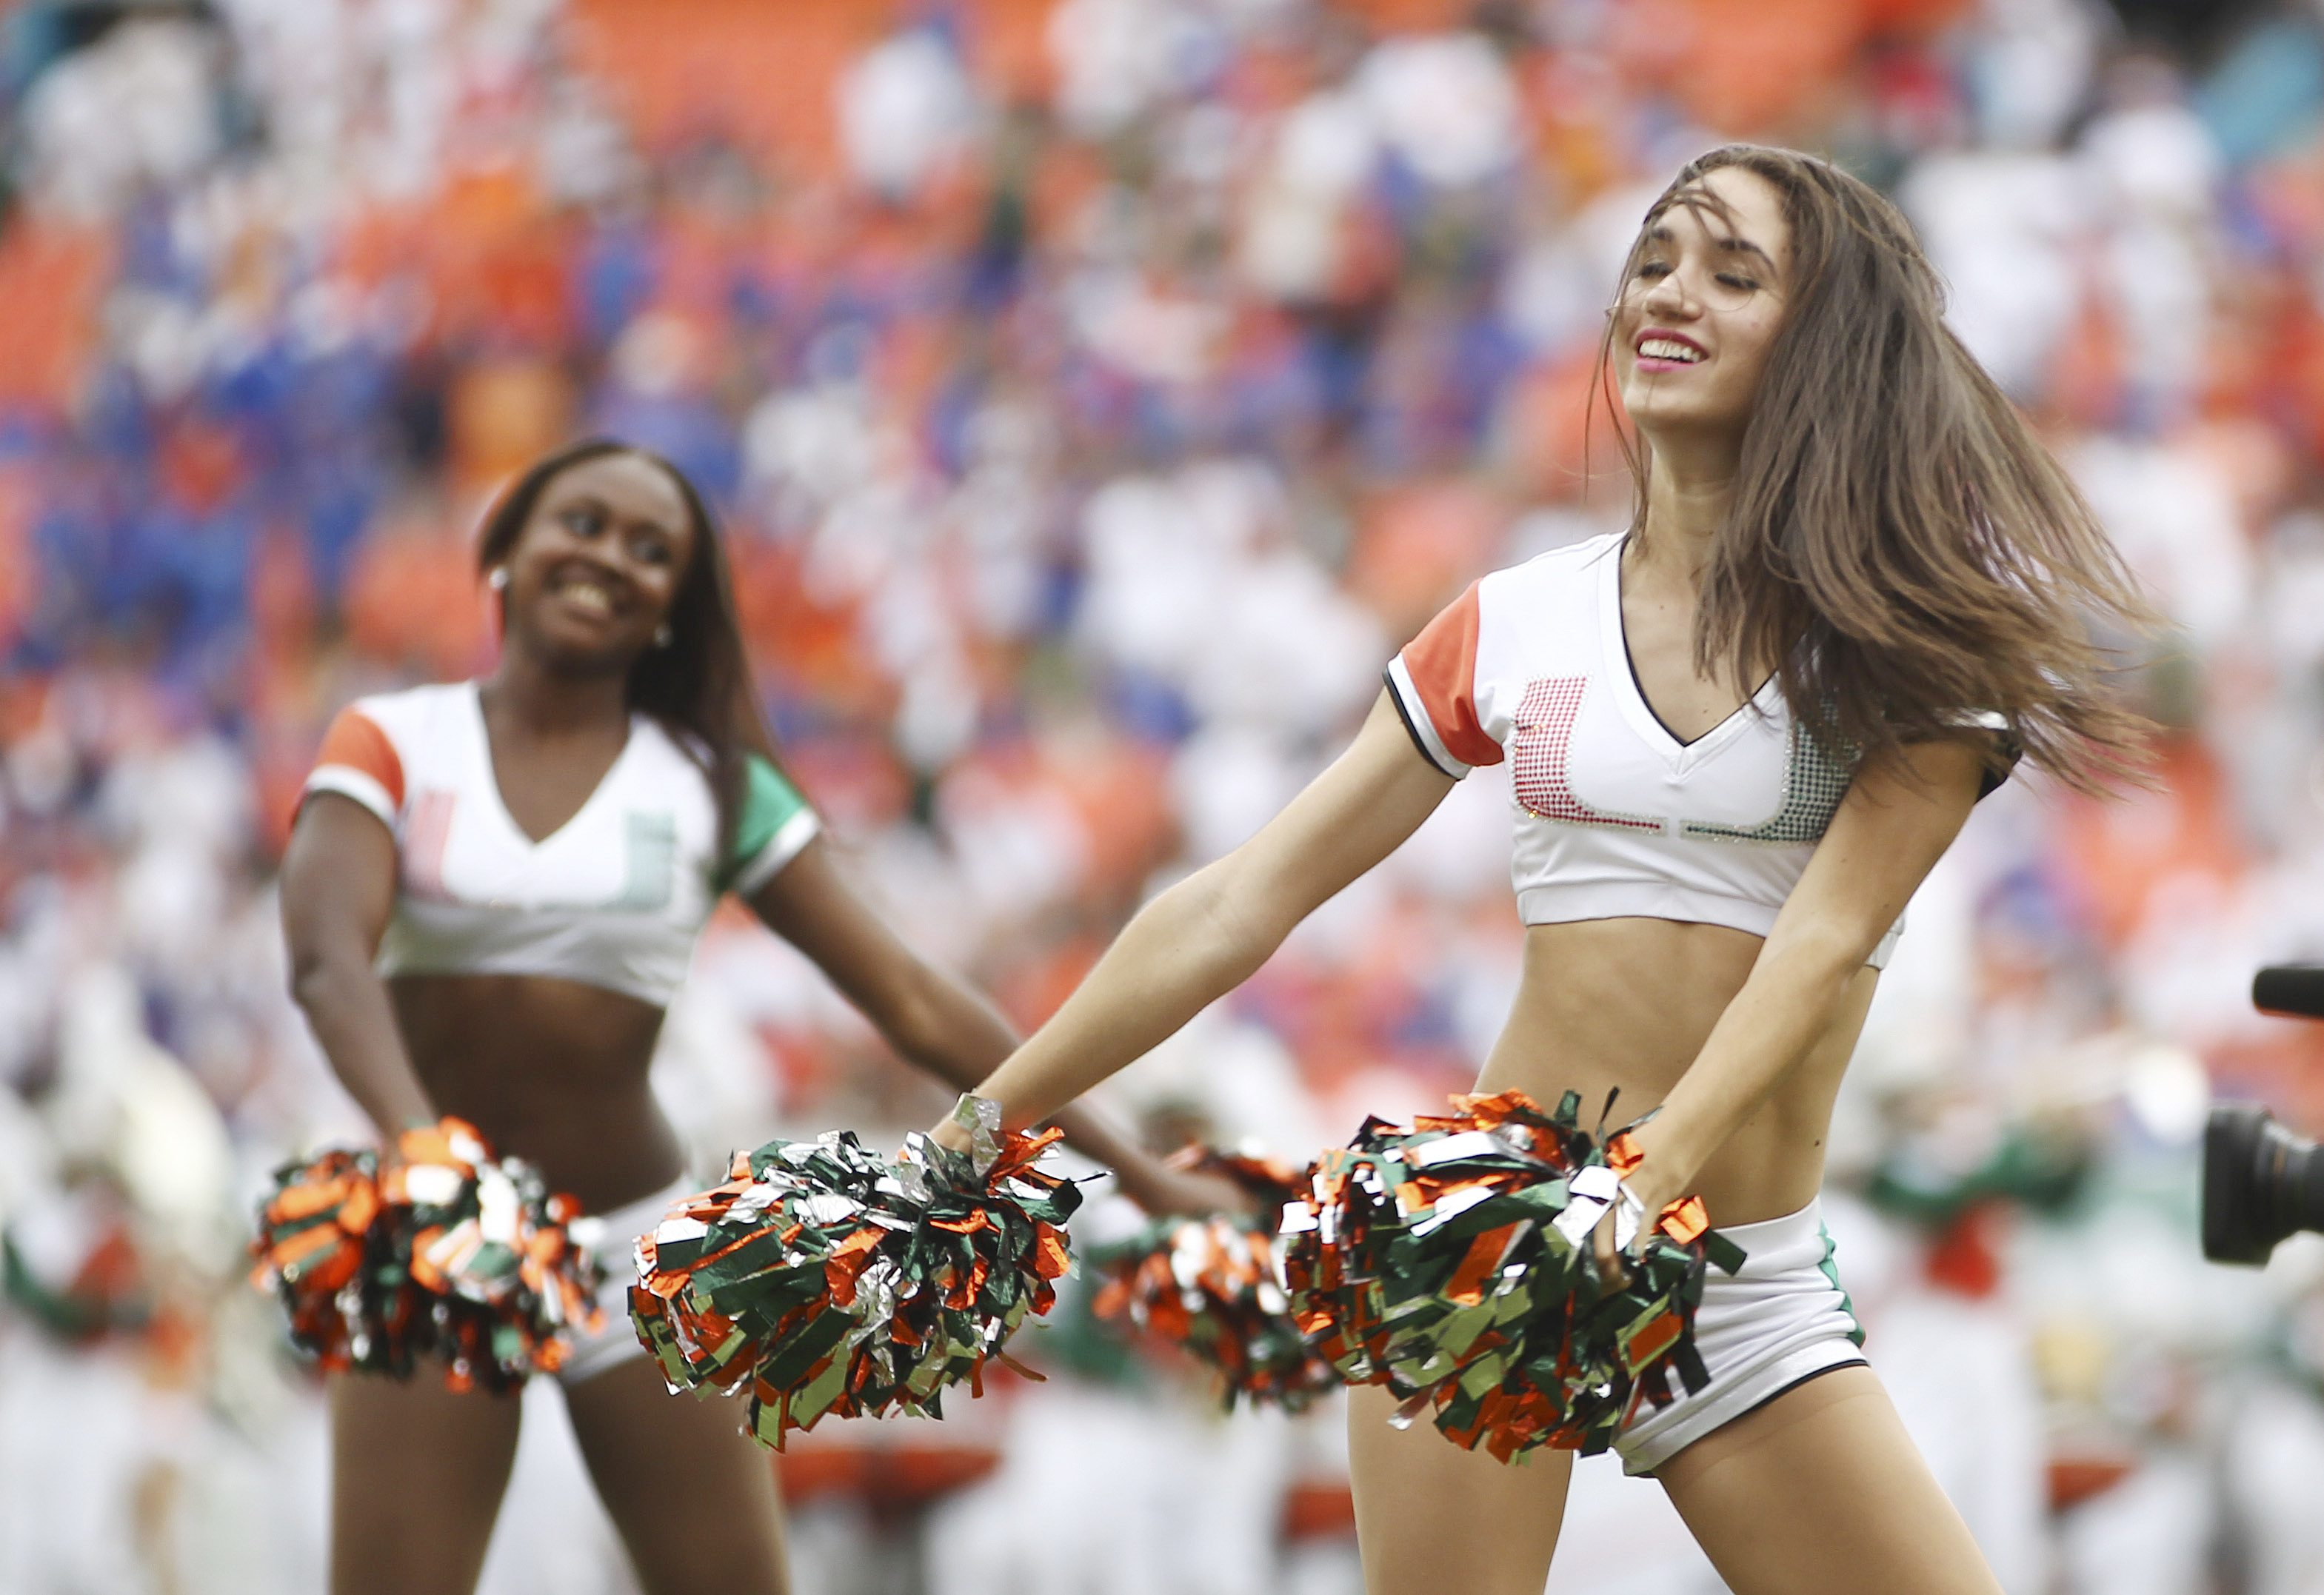 Miami cheerleaders dance during the second of a NCAA college football game in Miami Gardens, Fla., Saturday, Sept. 7, 2013. (AP Photo/J Pat Carter)